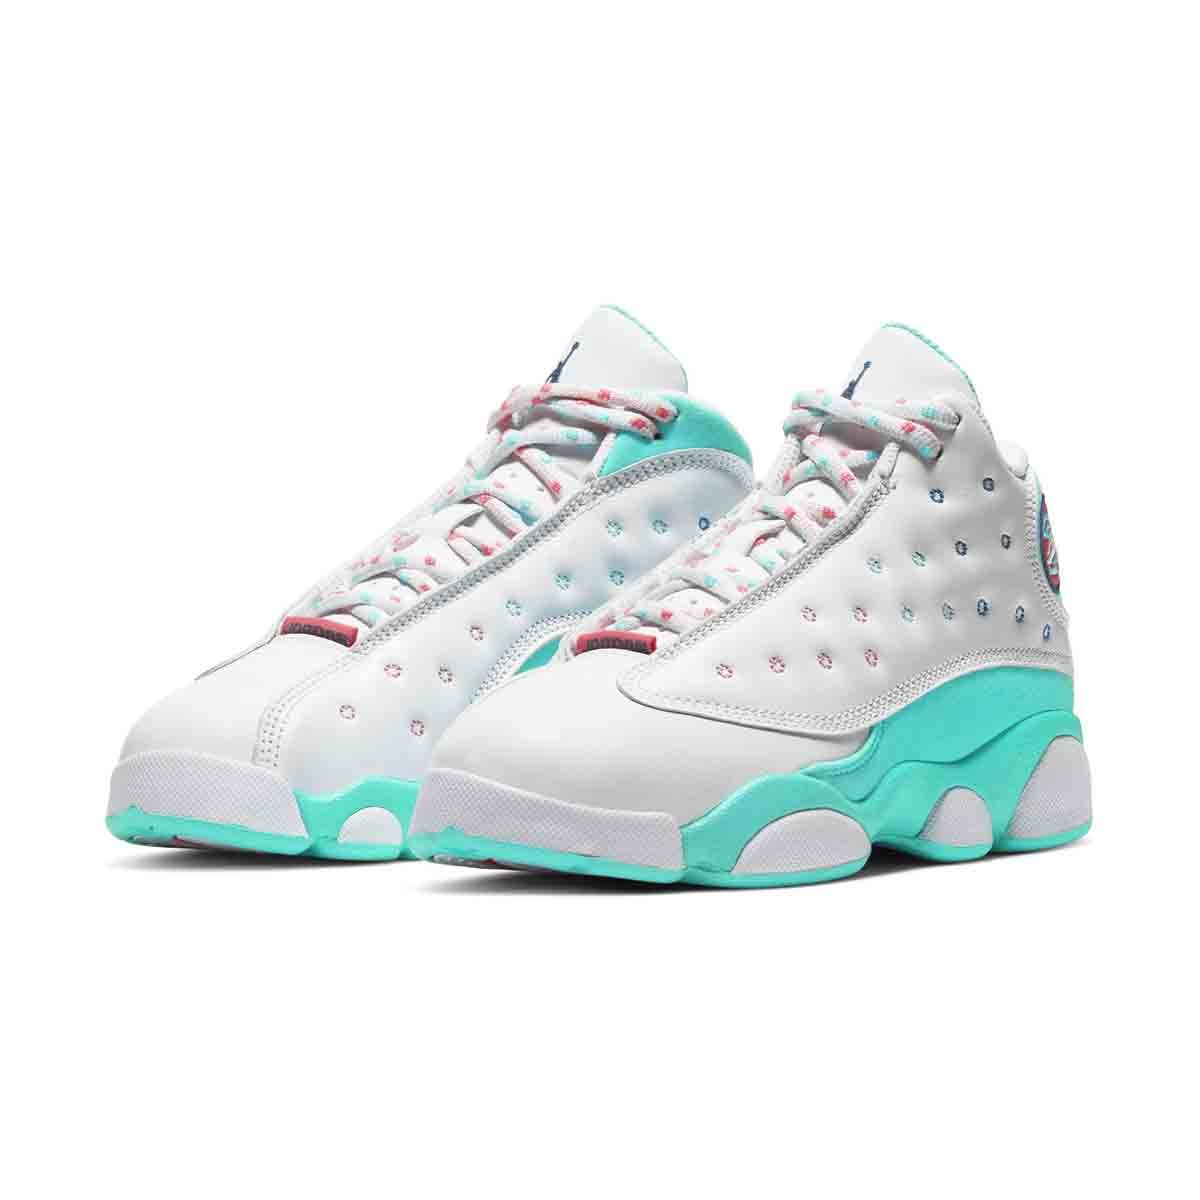 Girls' Jordan 13 Retro (PS) Pre-School Shoe